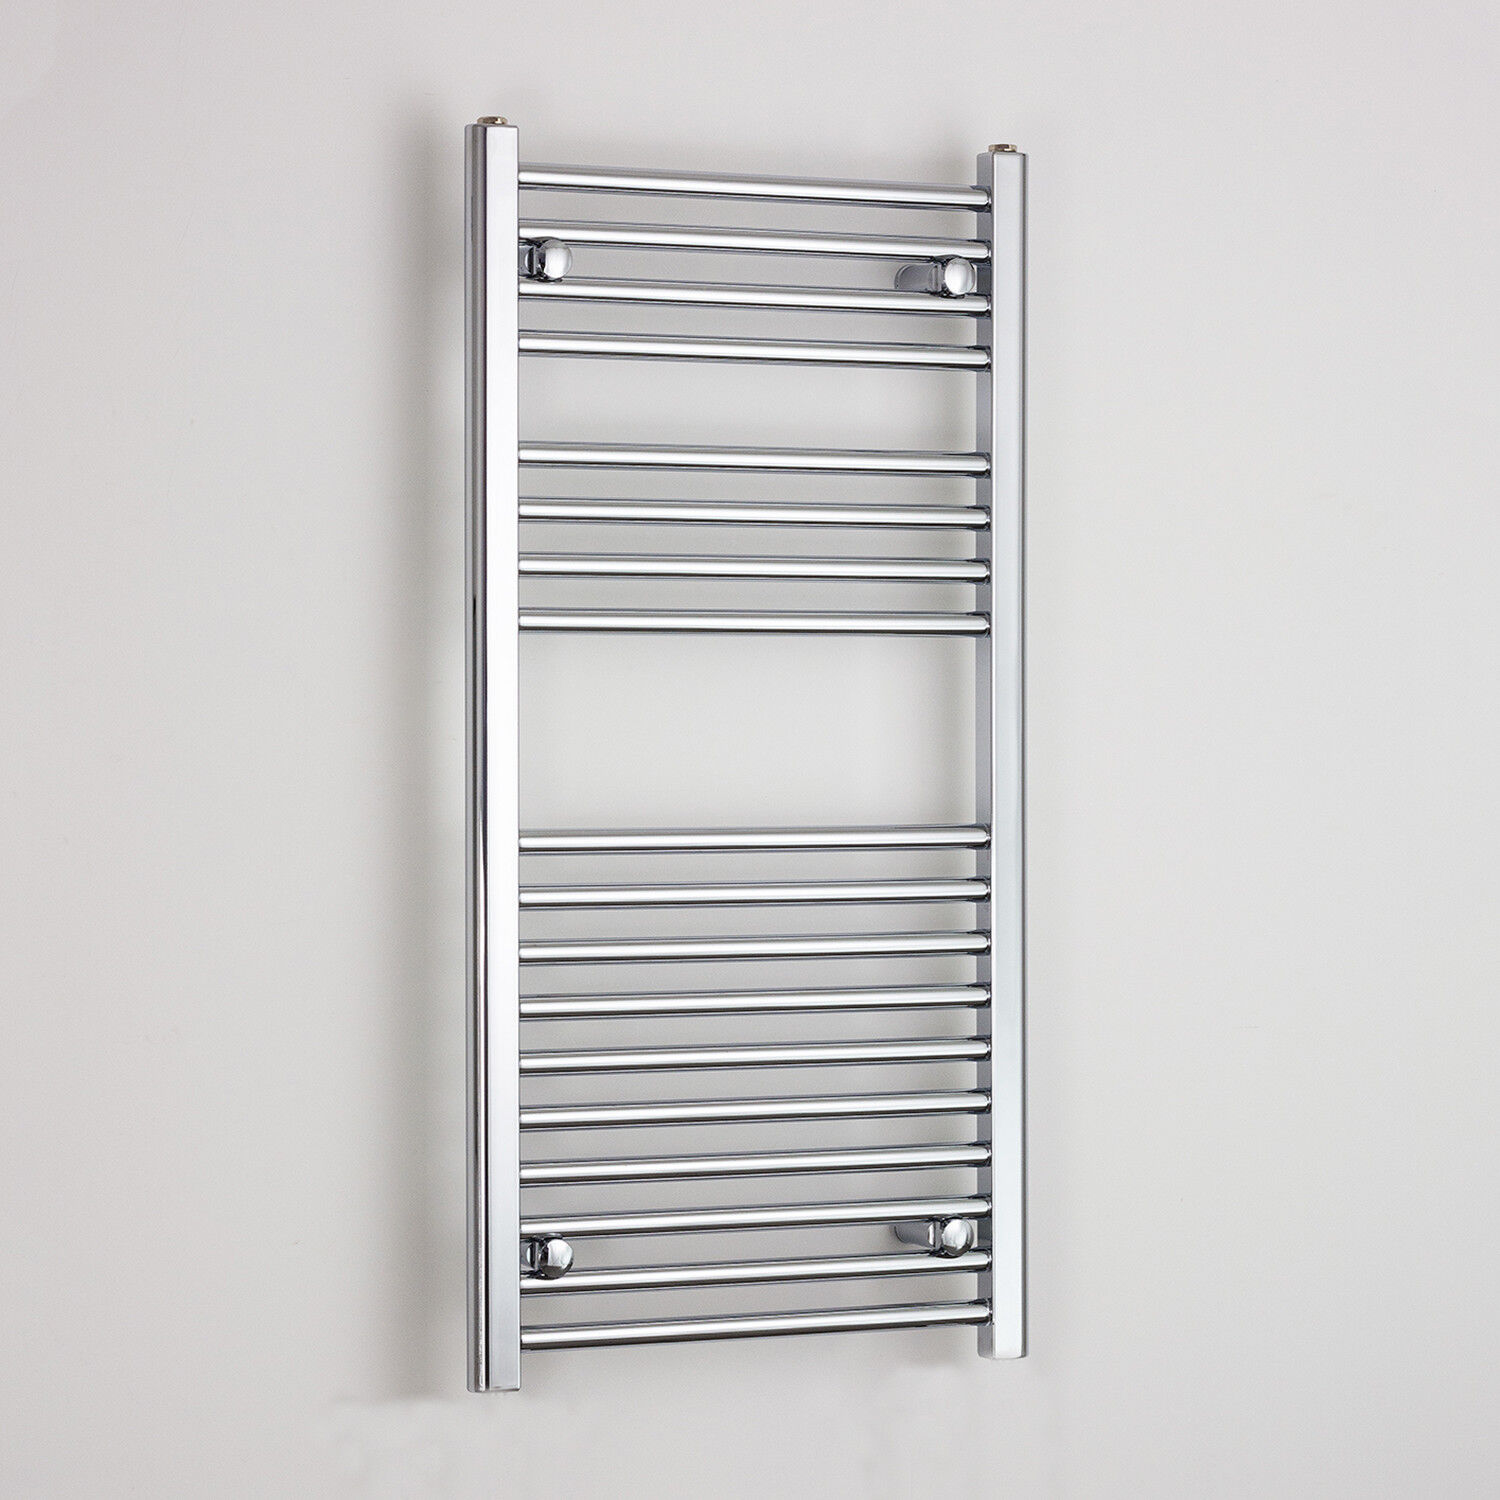 Webteppich Xxl Lutz 600 X 1000 Chrome Heated Towel Rail Rail Rail Flat Or Curved